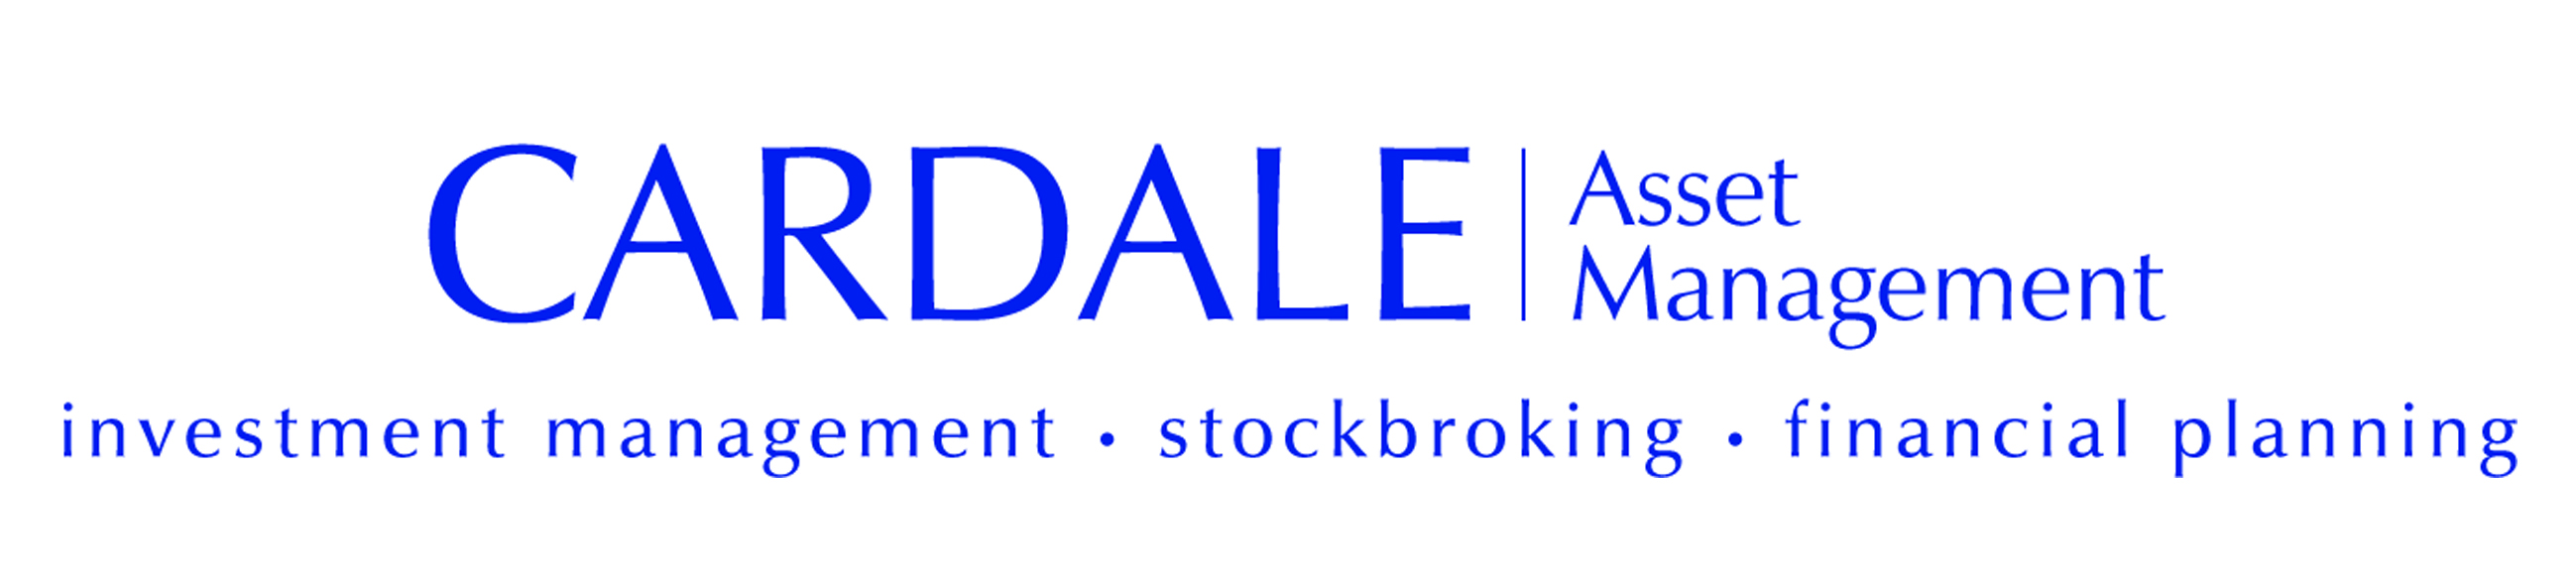 Cardale Asset Management